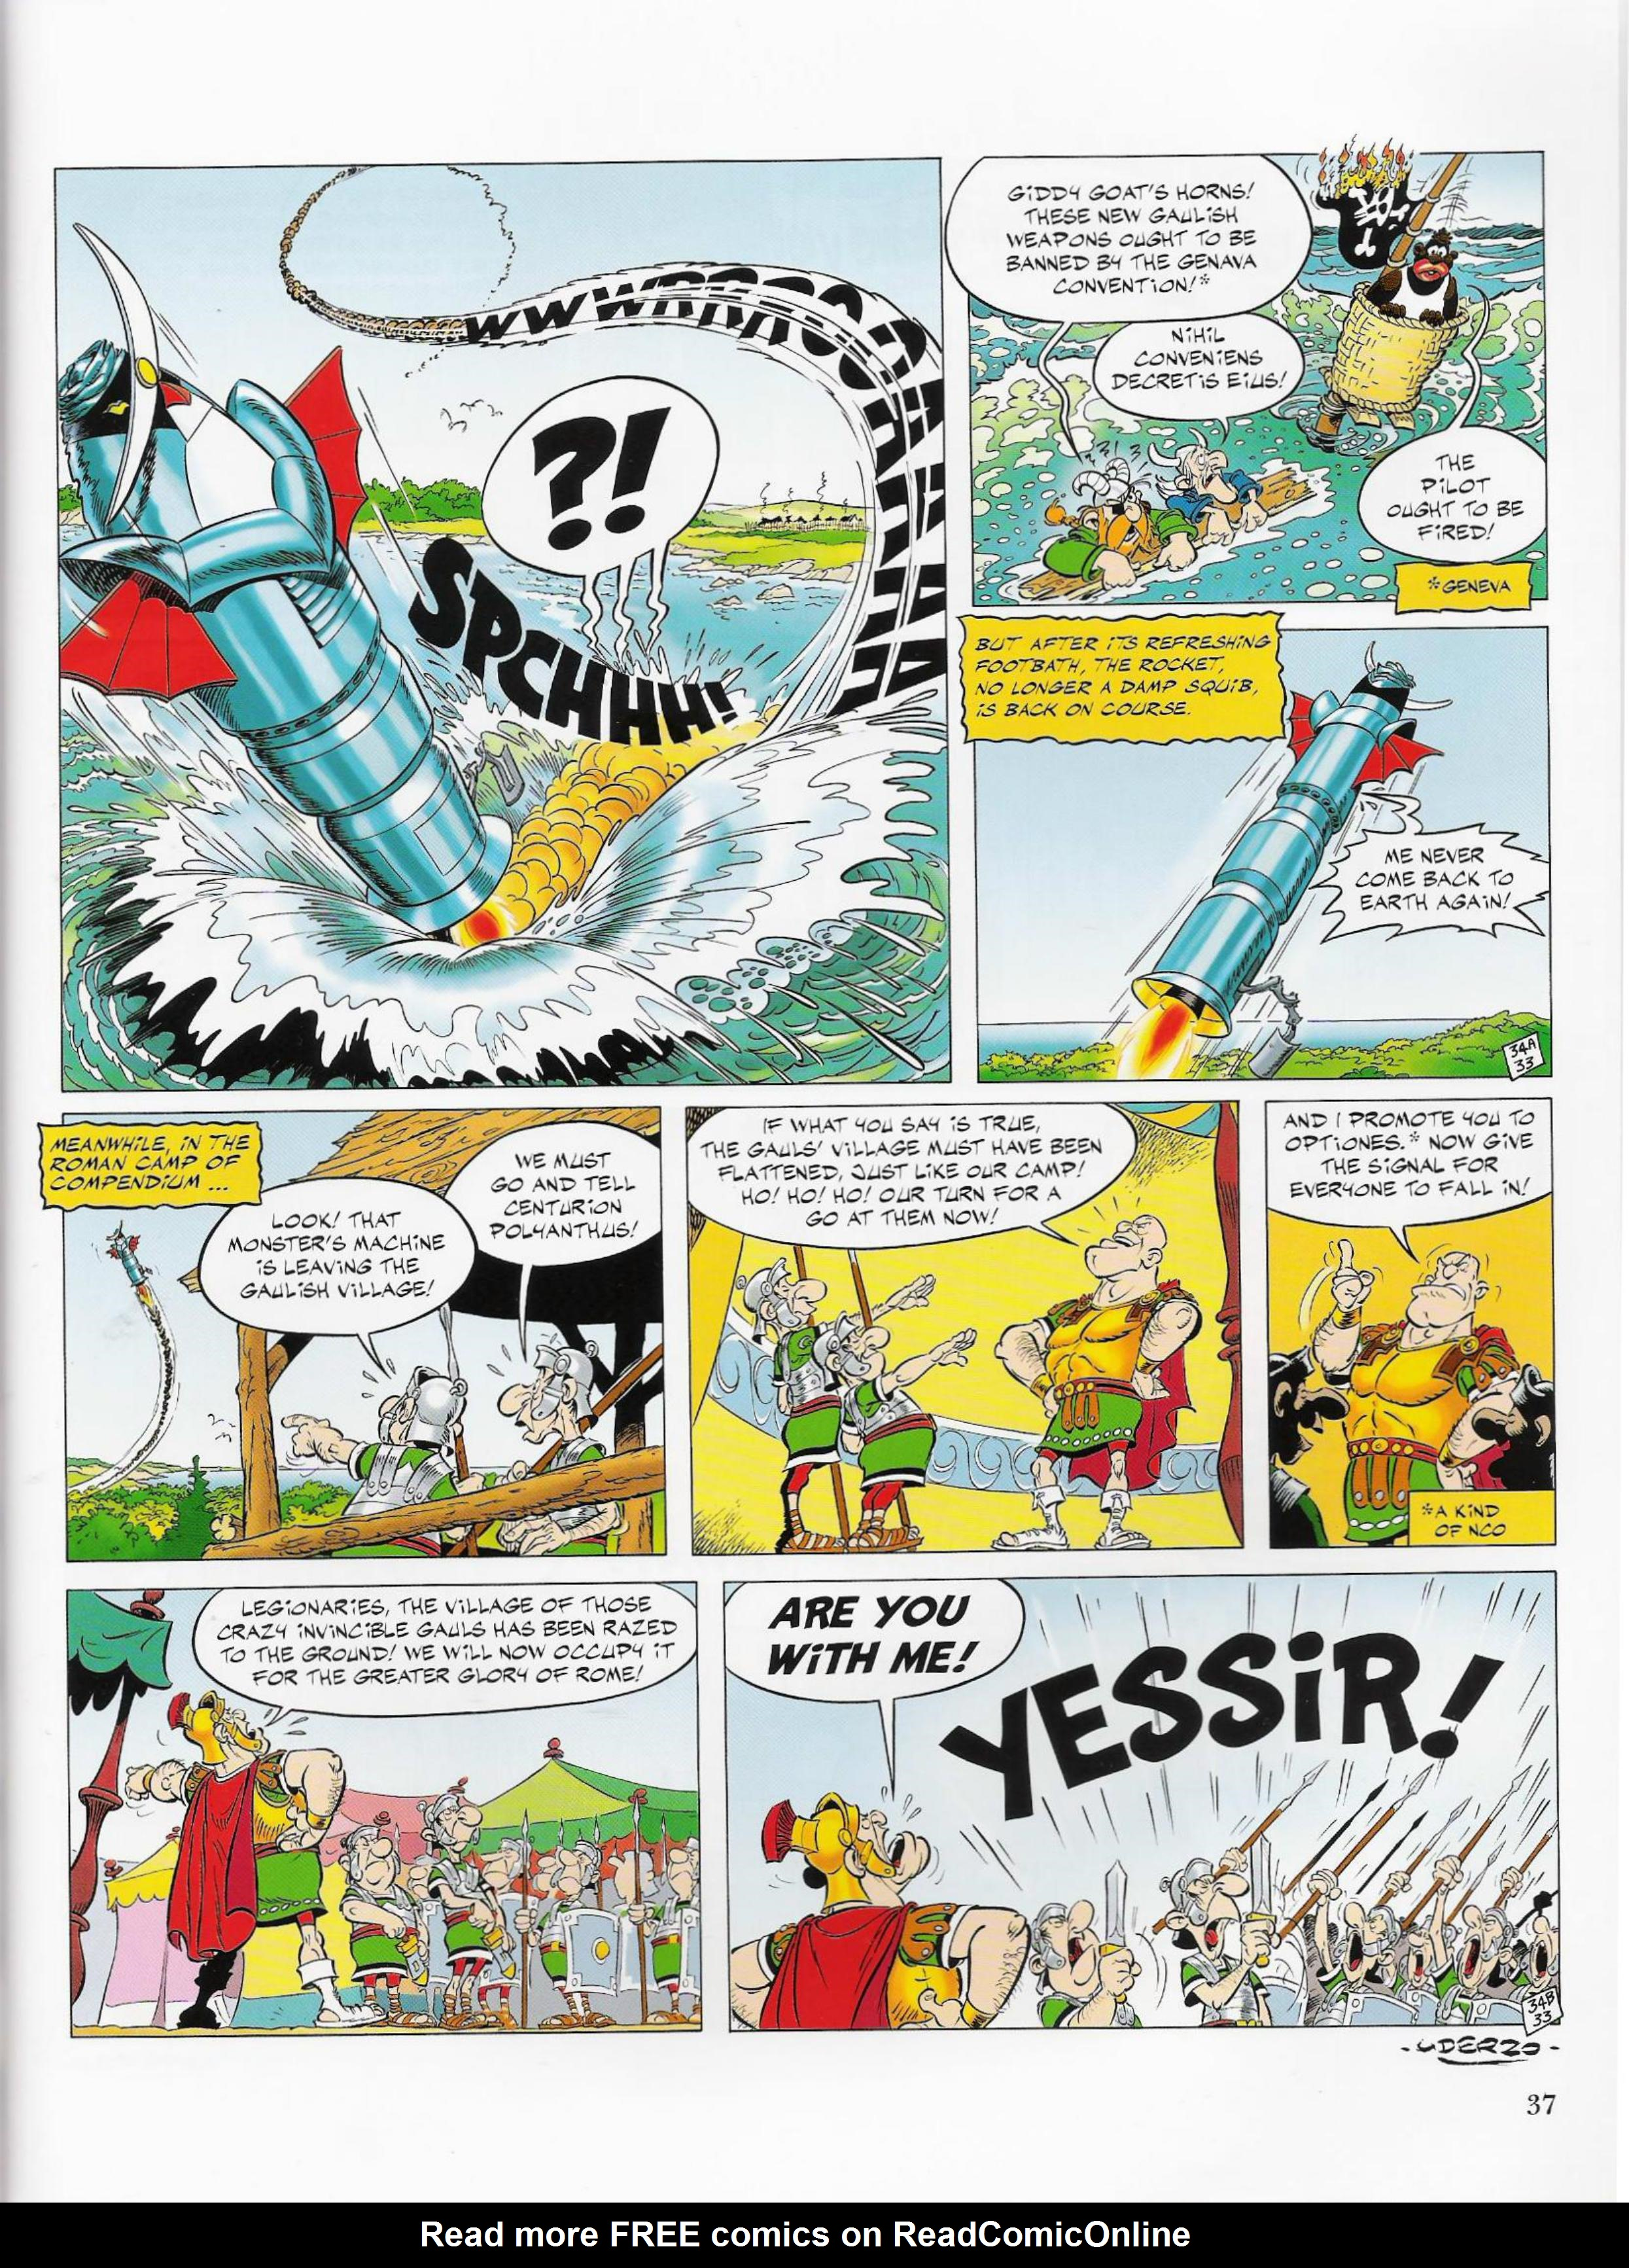 Read online Asterix comic -  Issue #33 - 37